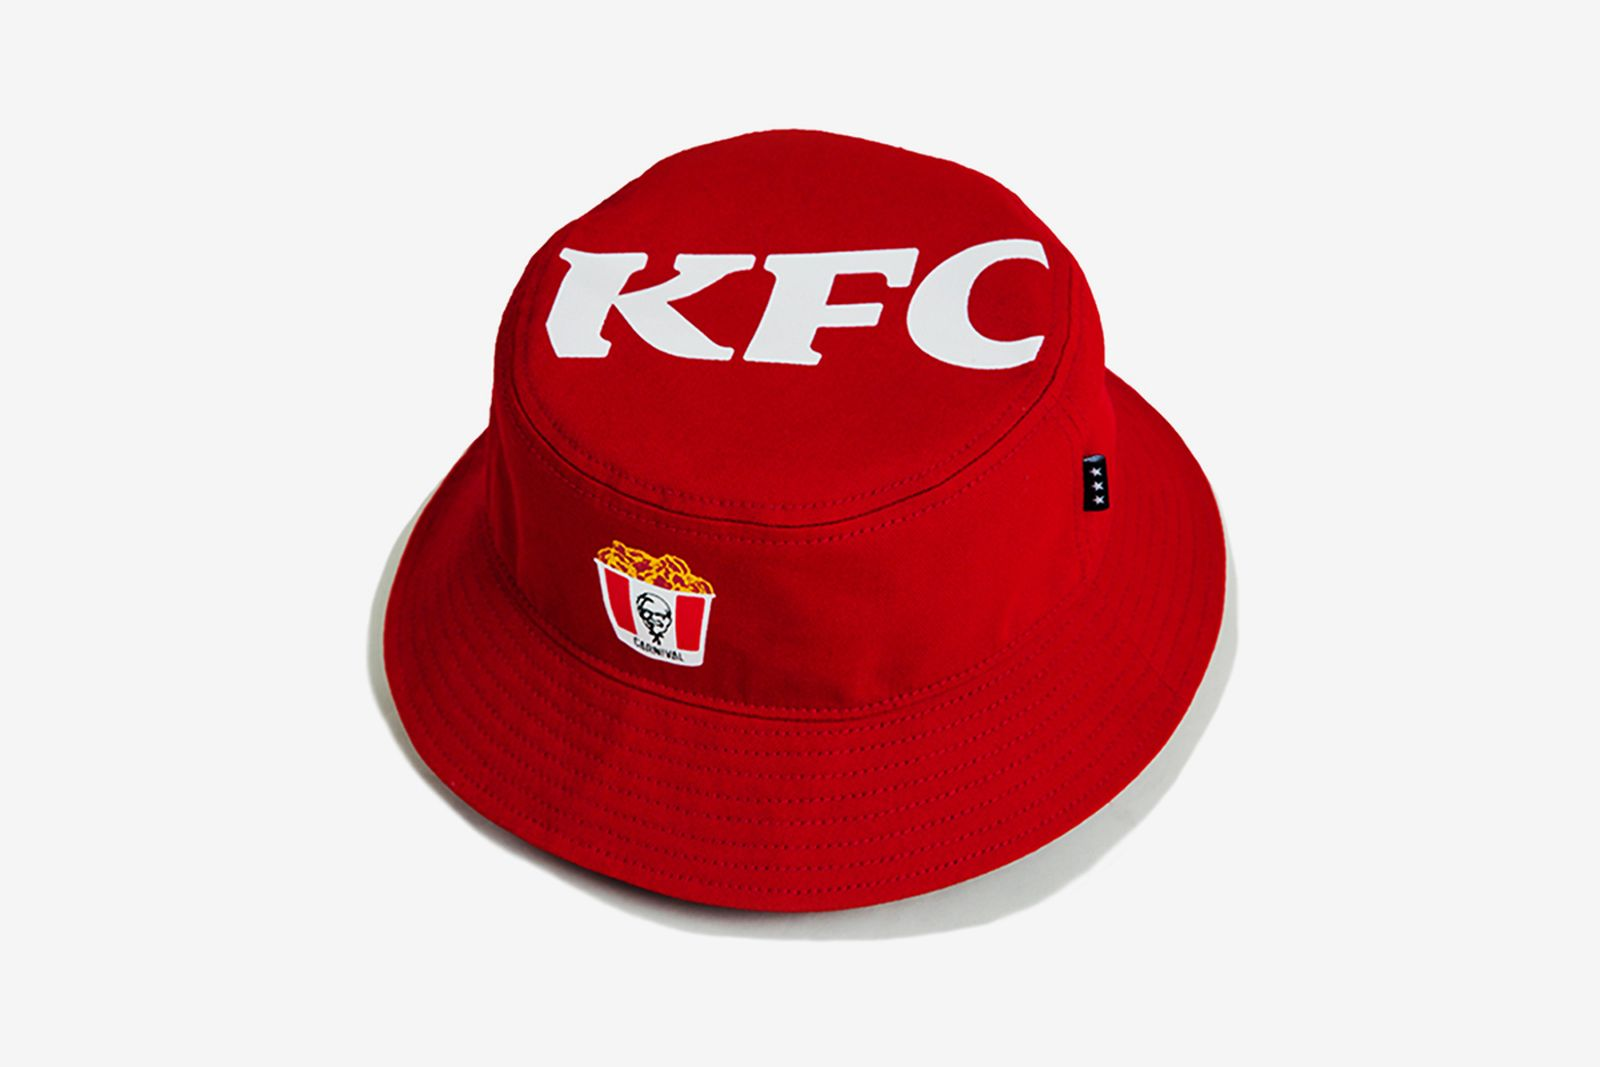 kfc carnival capsule collection release details